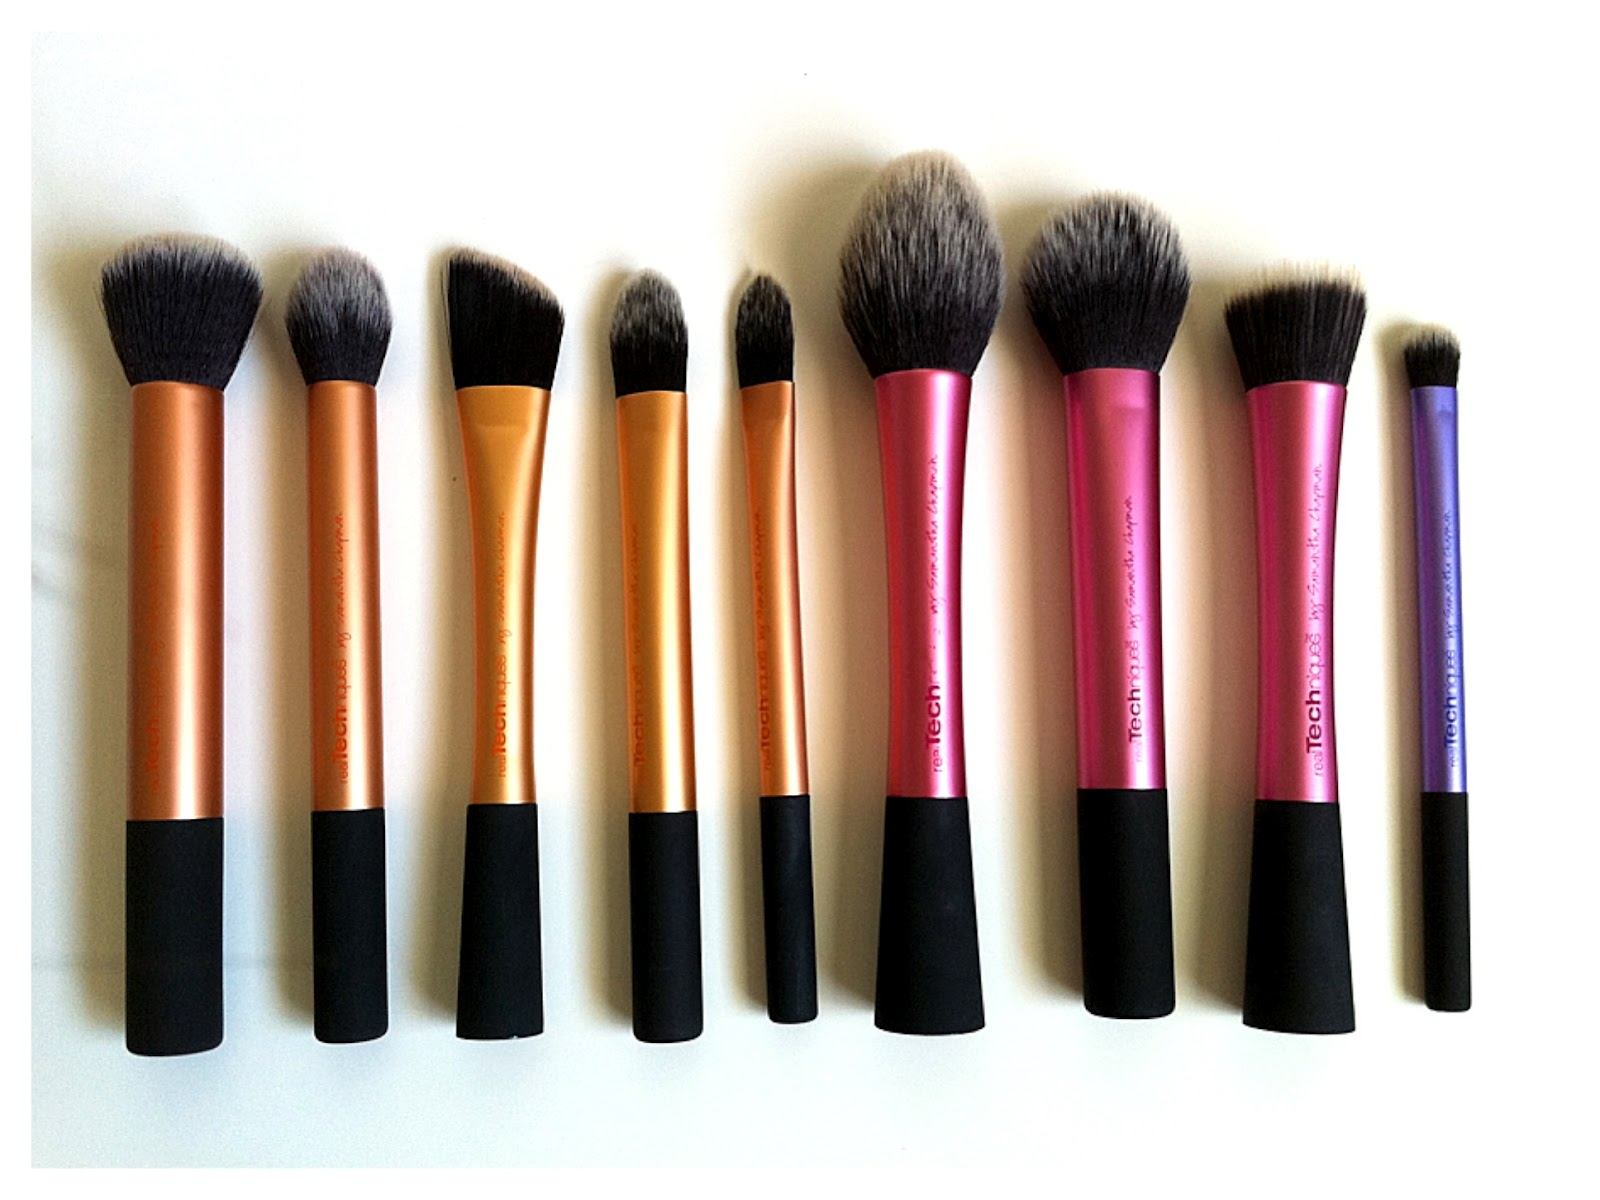 Sigma makeup brushes uk